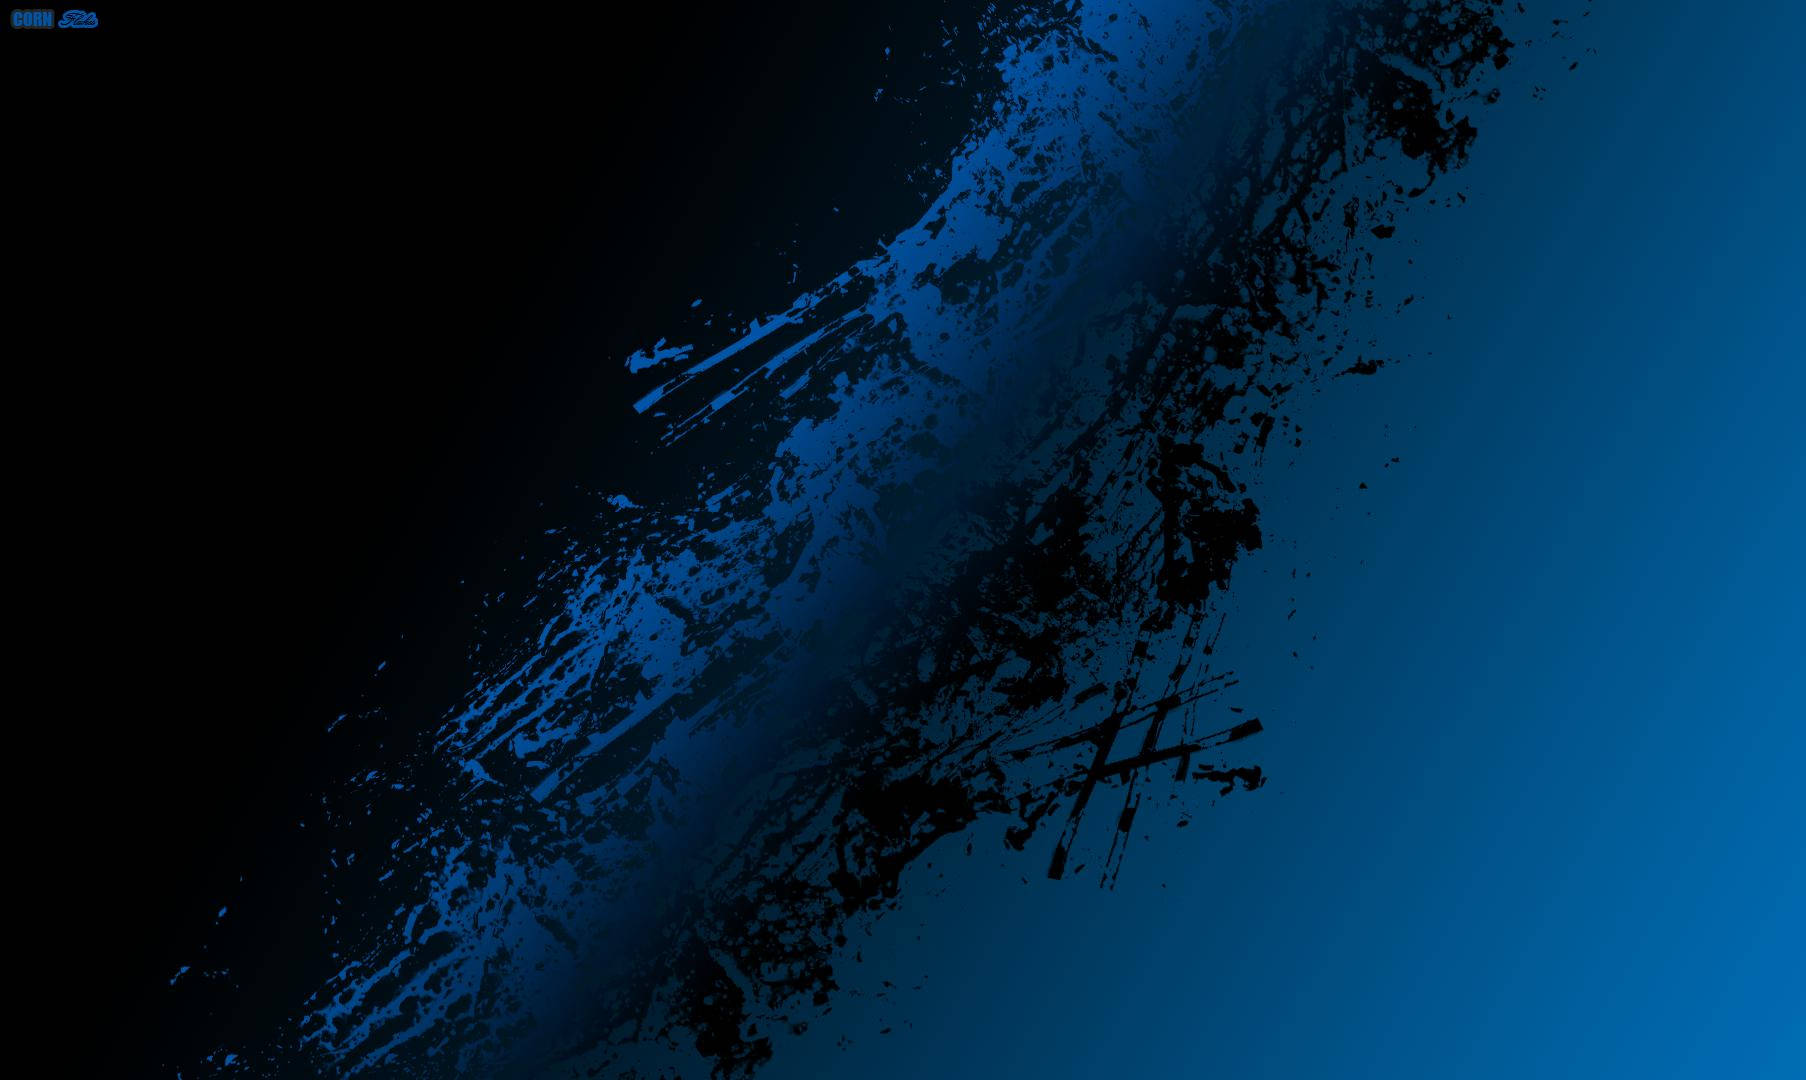 Black And Blue Abstract Background For Free